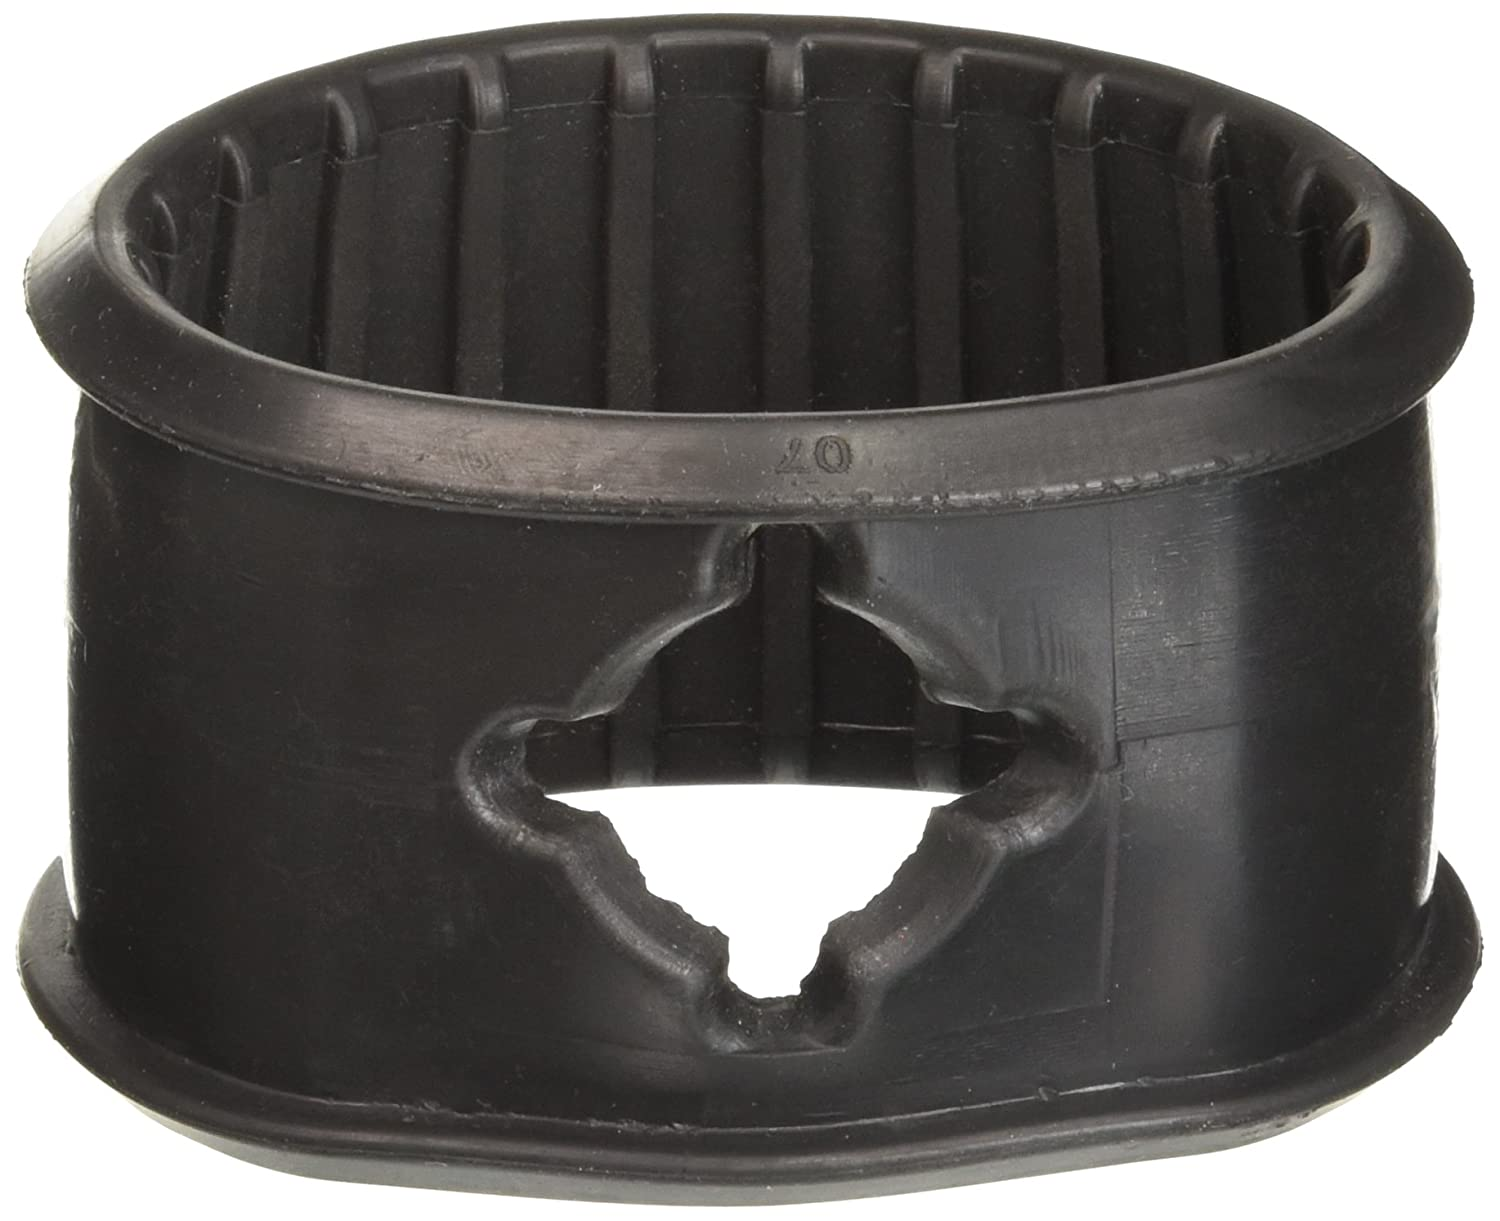 Ashcroft 471B190-01 Rubber Boot, Black, for DG25 Gauge ASHCROFT INC 6833490